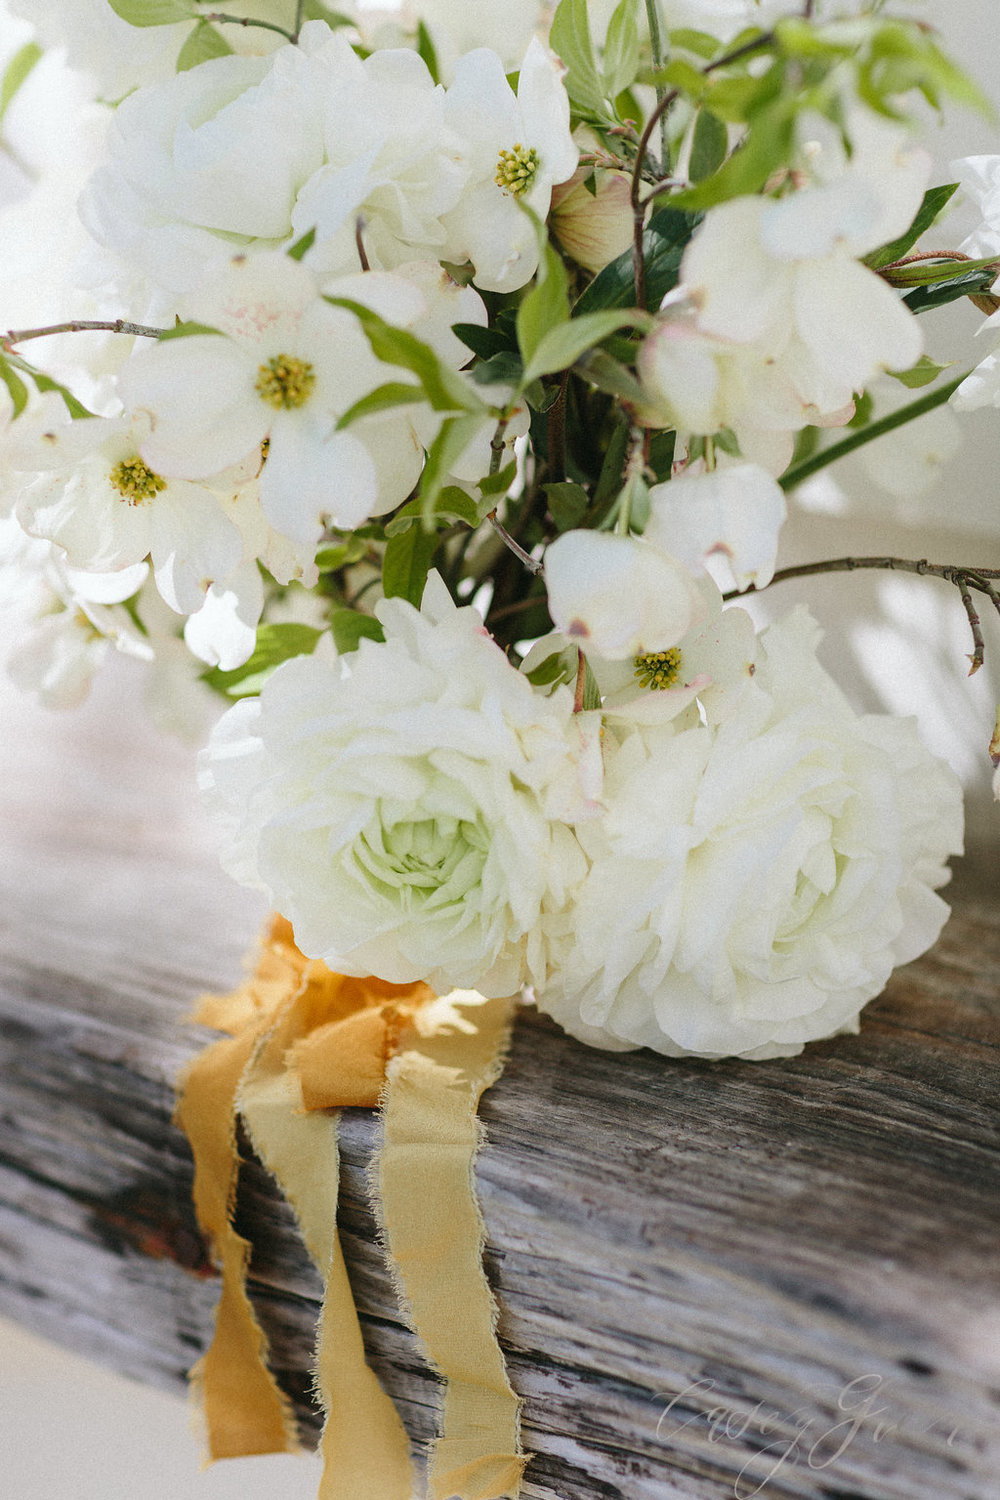 savannah-bridal-shop-ivory-and-beau-bridal-boutique-casey-green-photography-tybee-island-chapel-wedding-planning-mistakes-12.jpg